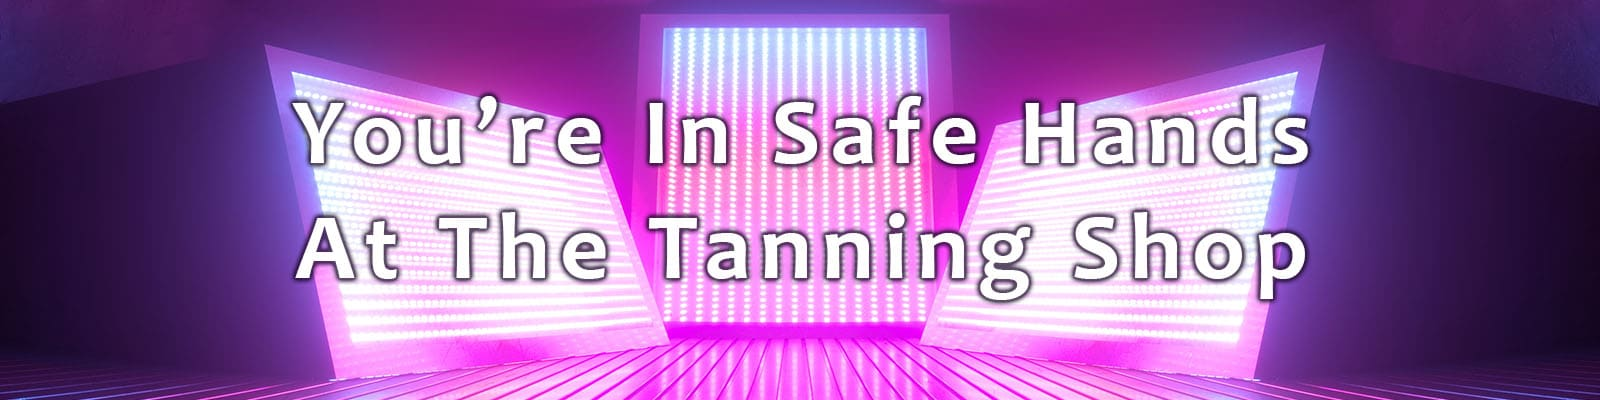 Tanning Film - The Tanning Shop